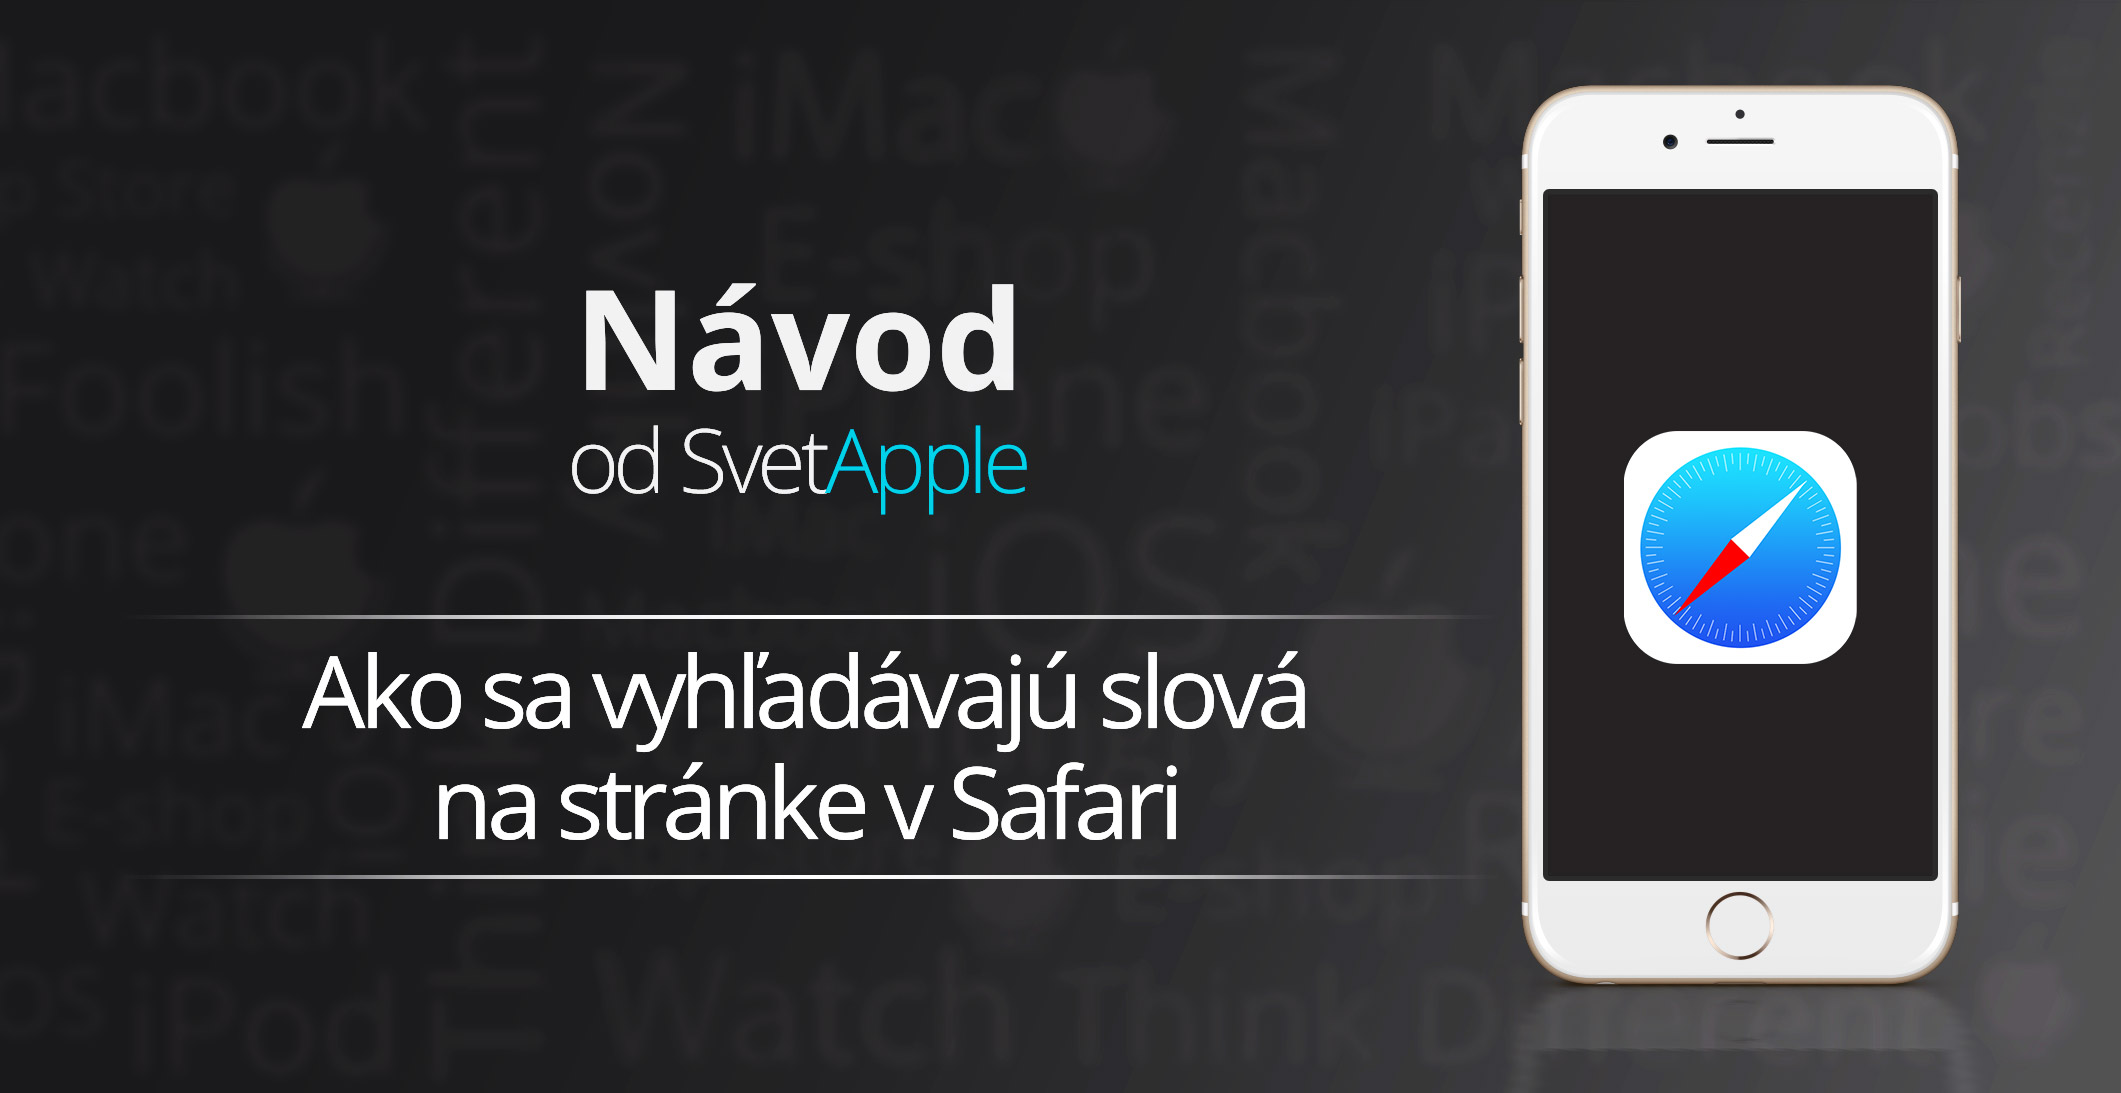 navod-iphone-safari-hladat-svetapple